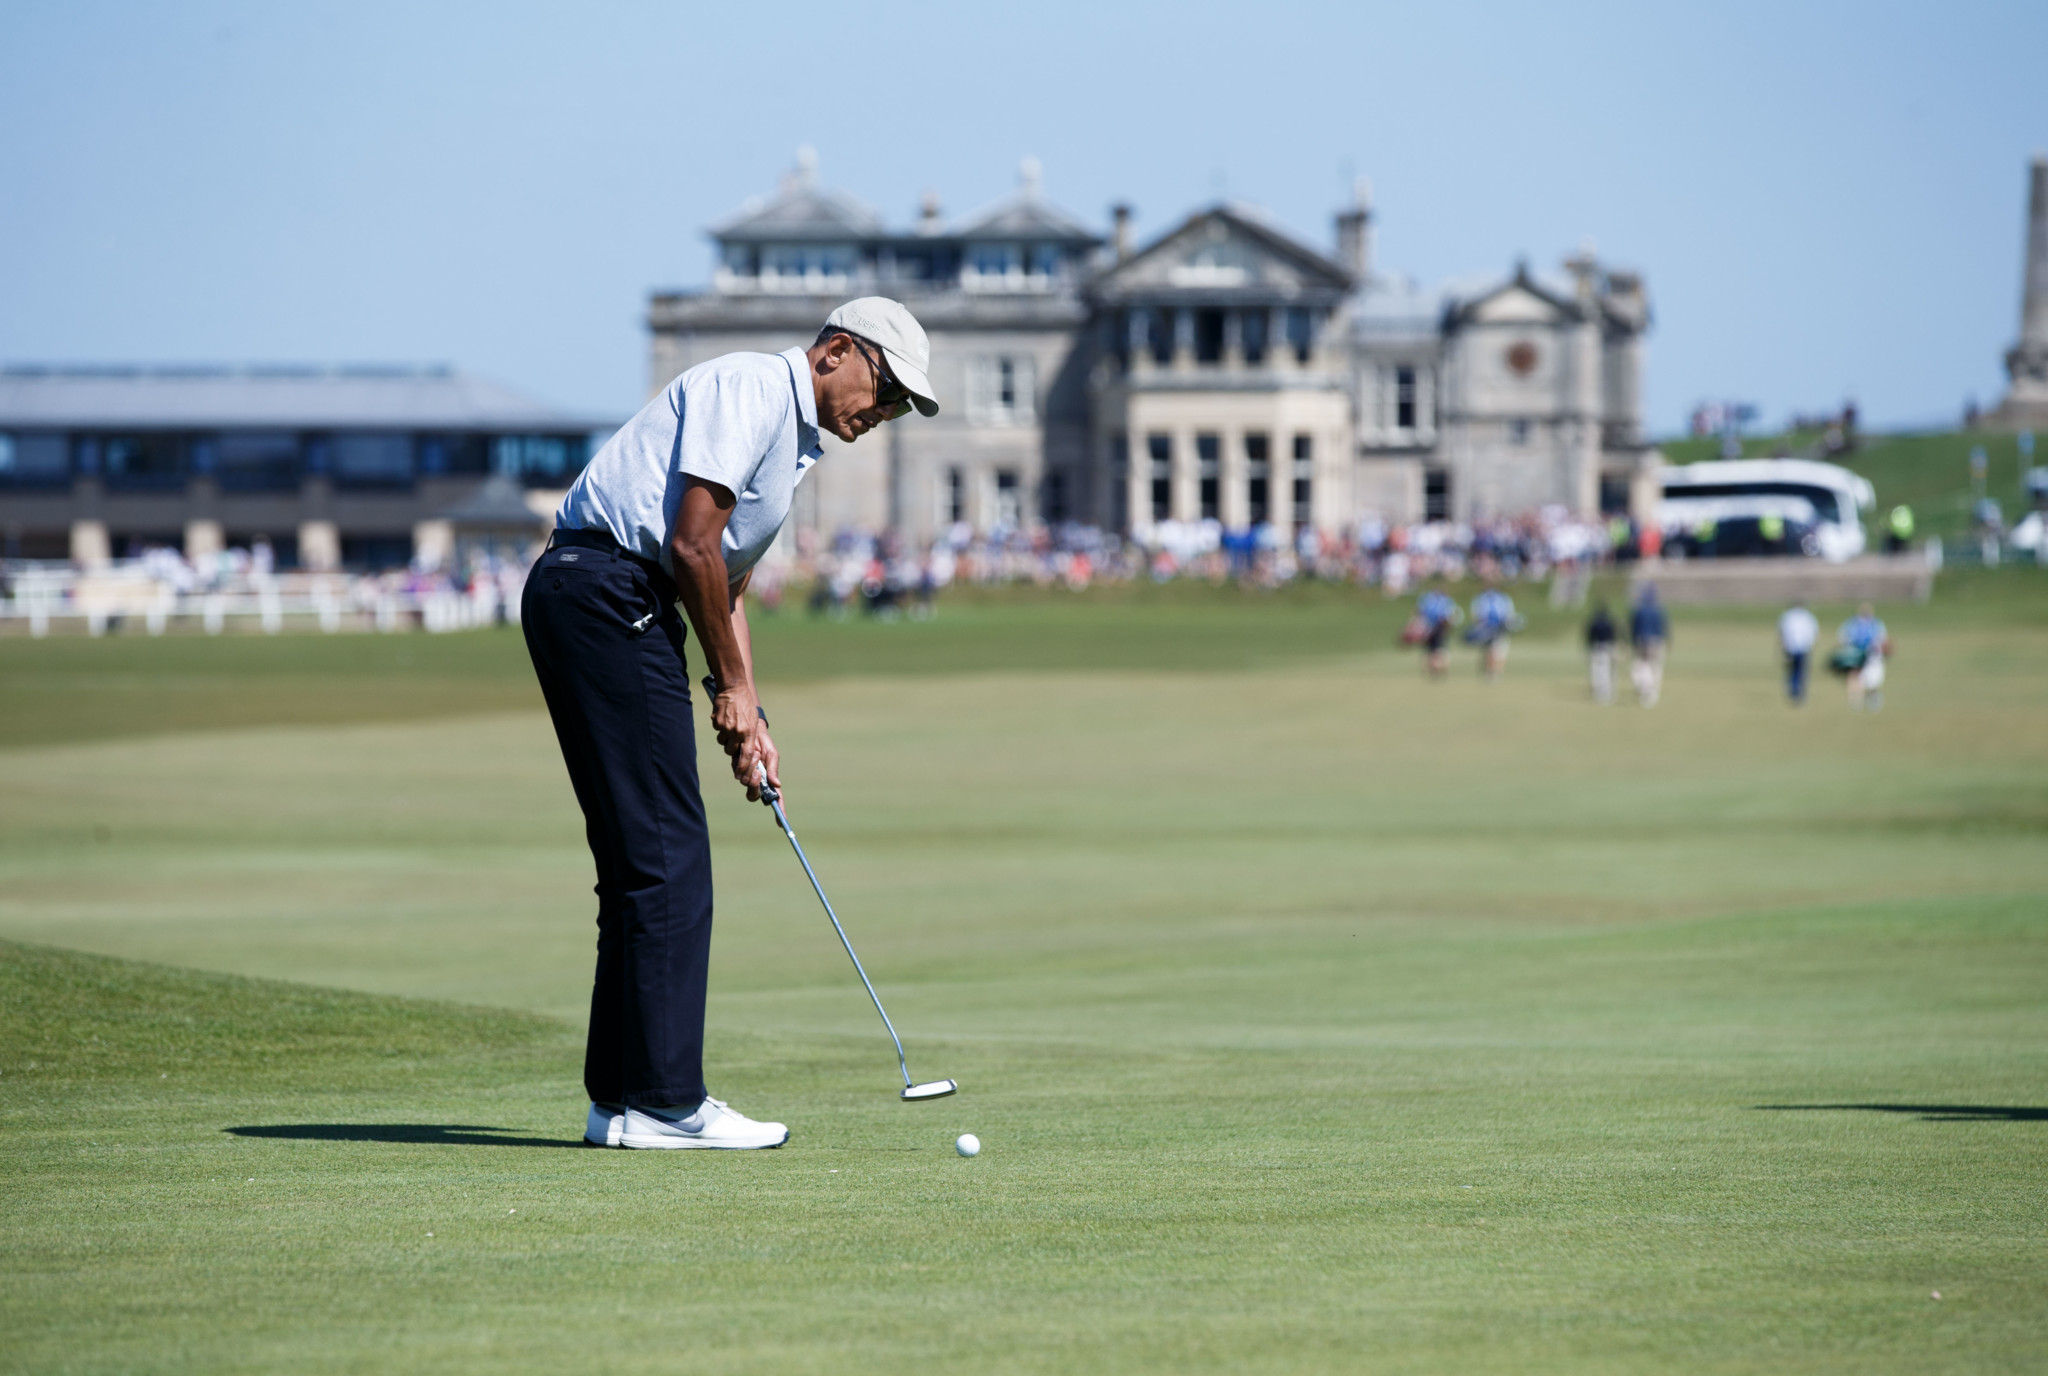 Former United States President Barack Obama also played a round of golf at the Old Course in St Andrews during his recent trip to Scotland. (Photo by Robert Perry/Getty Images)